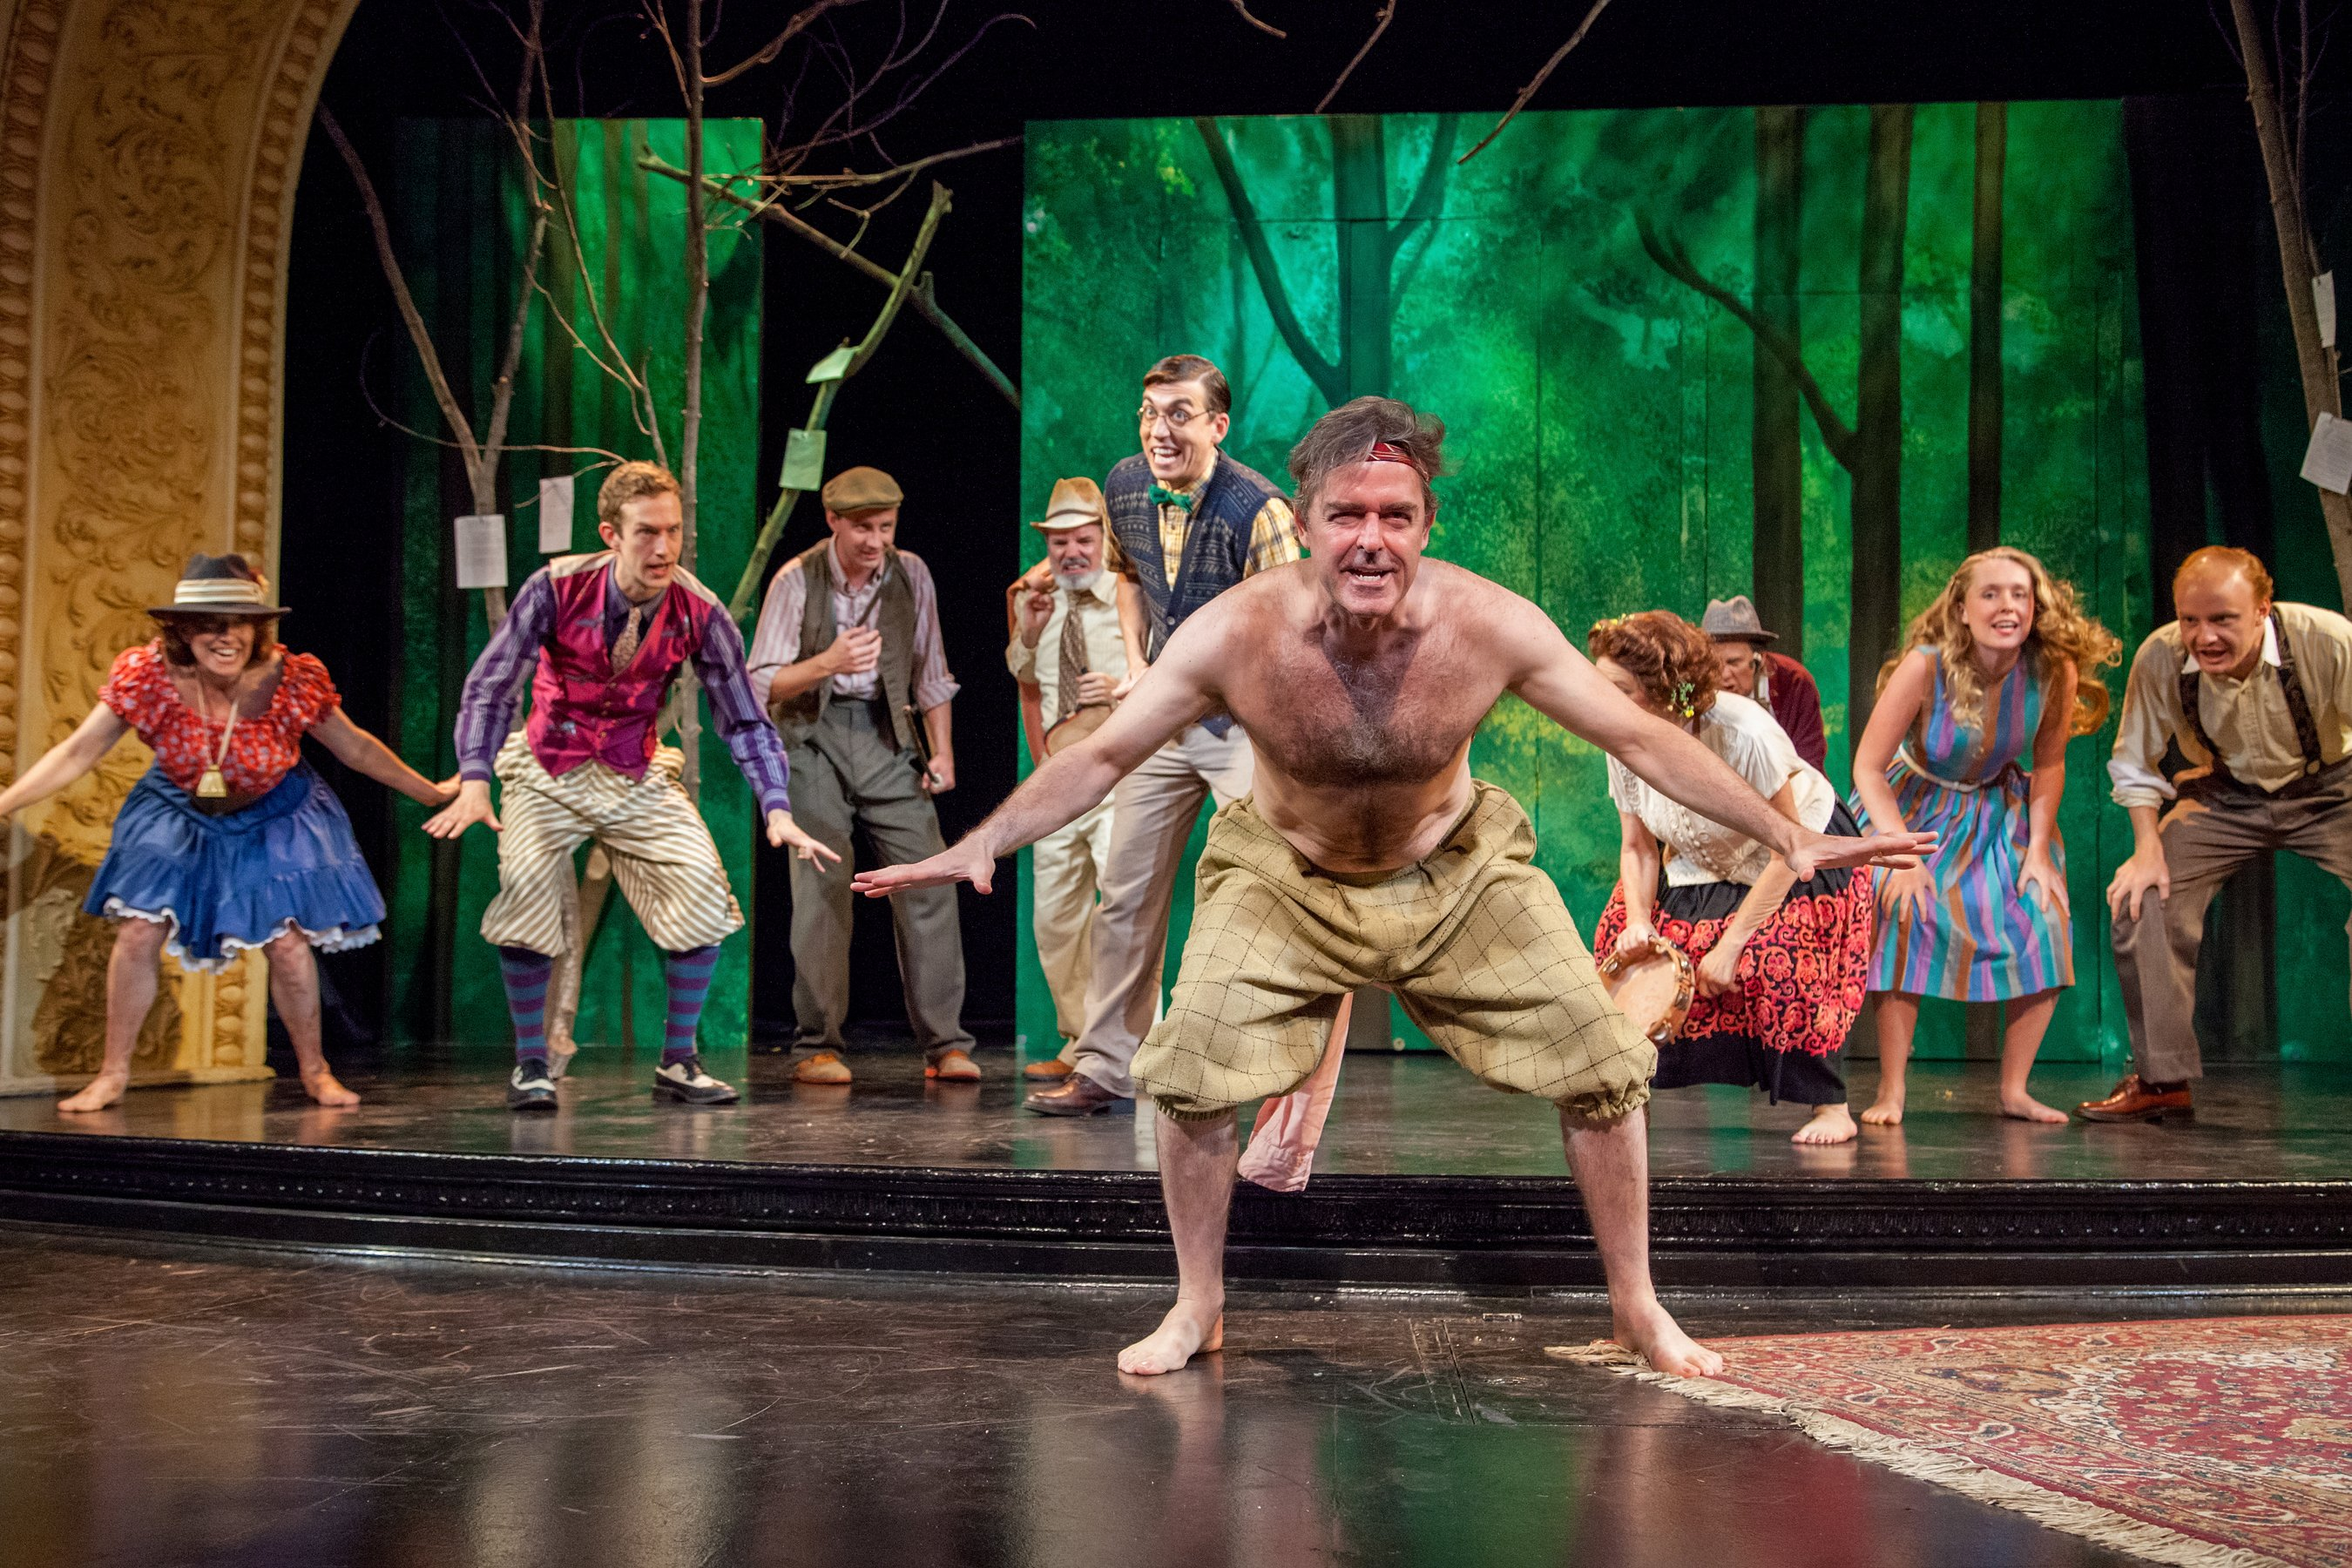 James Noel Hoban as Amiens and the cast of As You Like It from Theater at Monmouth's 2014 production of As You Like It. Directed by Catherine Weidner.